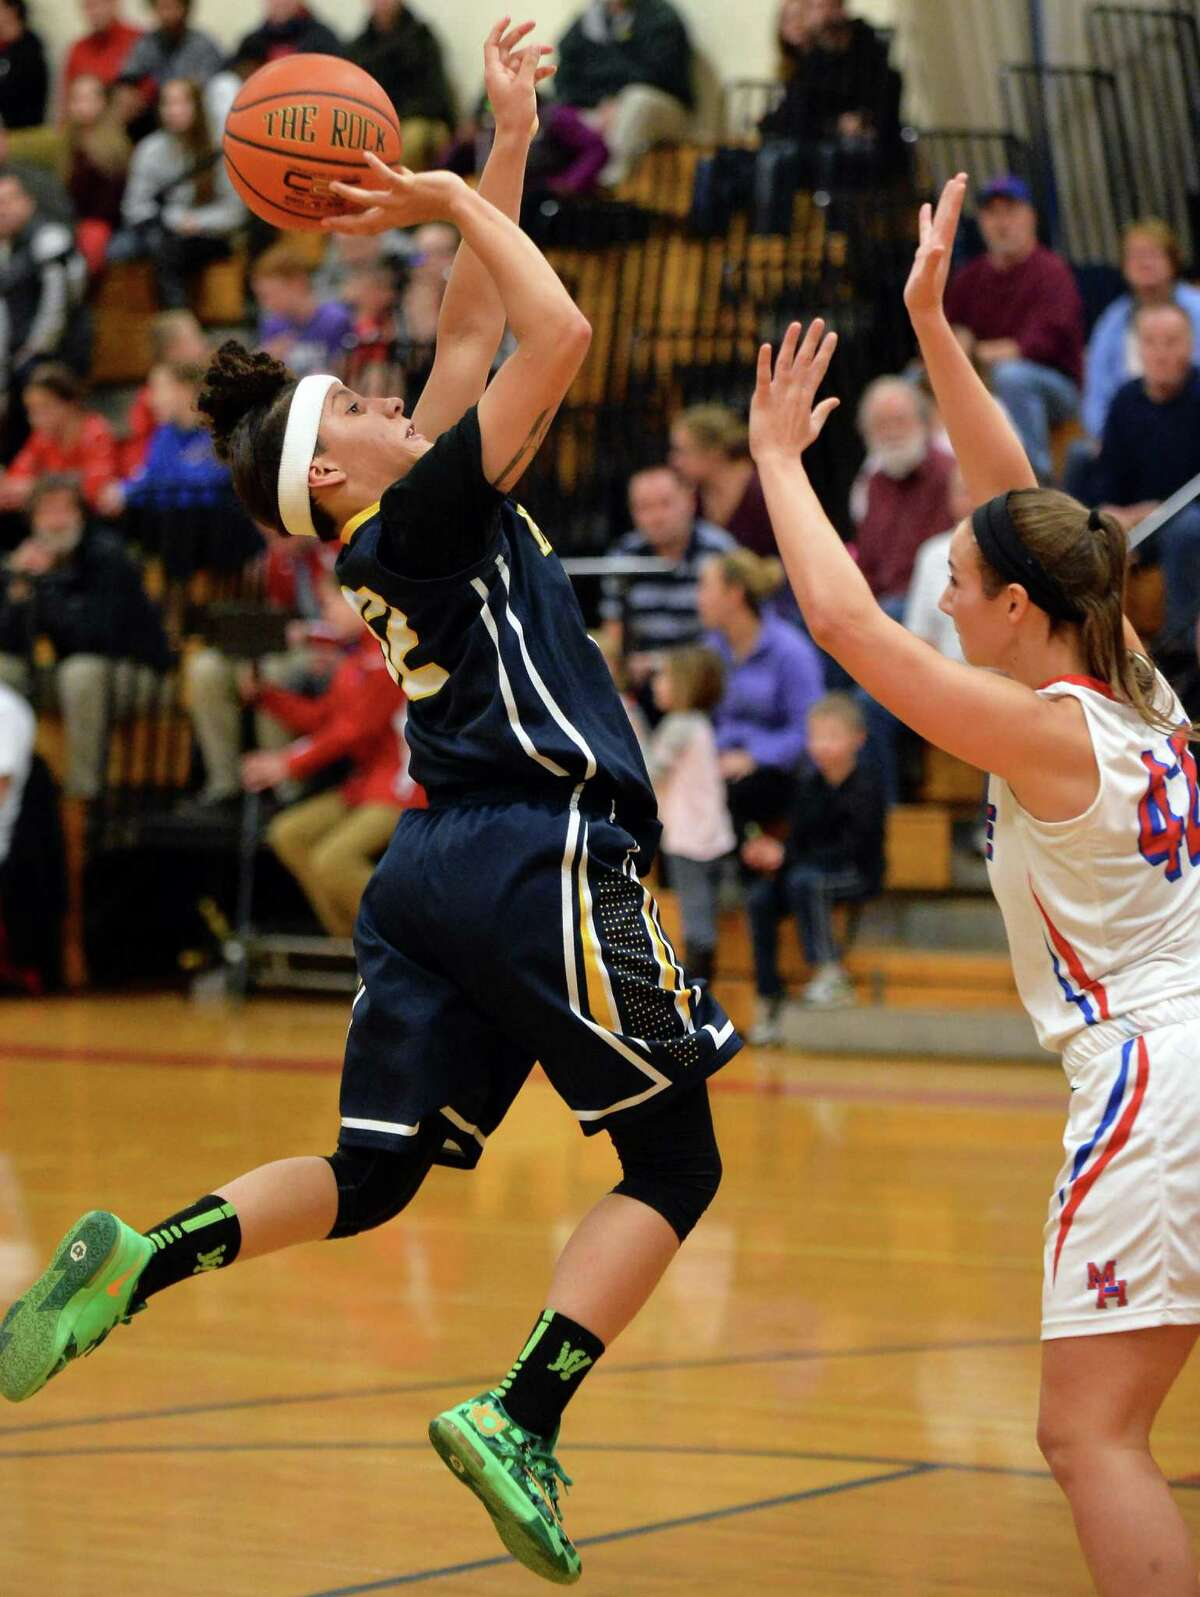 Hudson's #12 Selena Jones, left, goes to the basket as Maple Hill's #42 Kayla Hanrahn defends during Saturday's game Jan. 9, 2016 in Castleton, NY. (John Carl D'Annibale / Times Union)